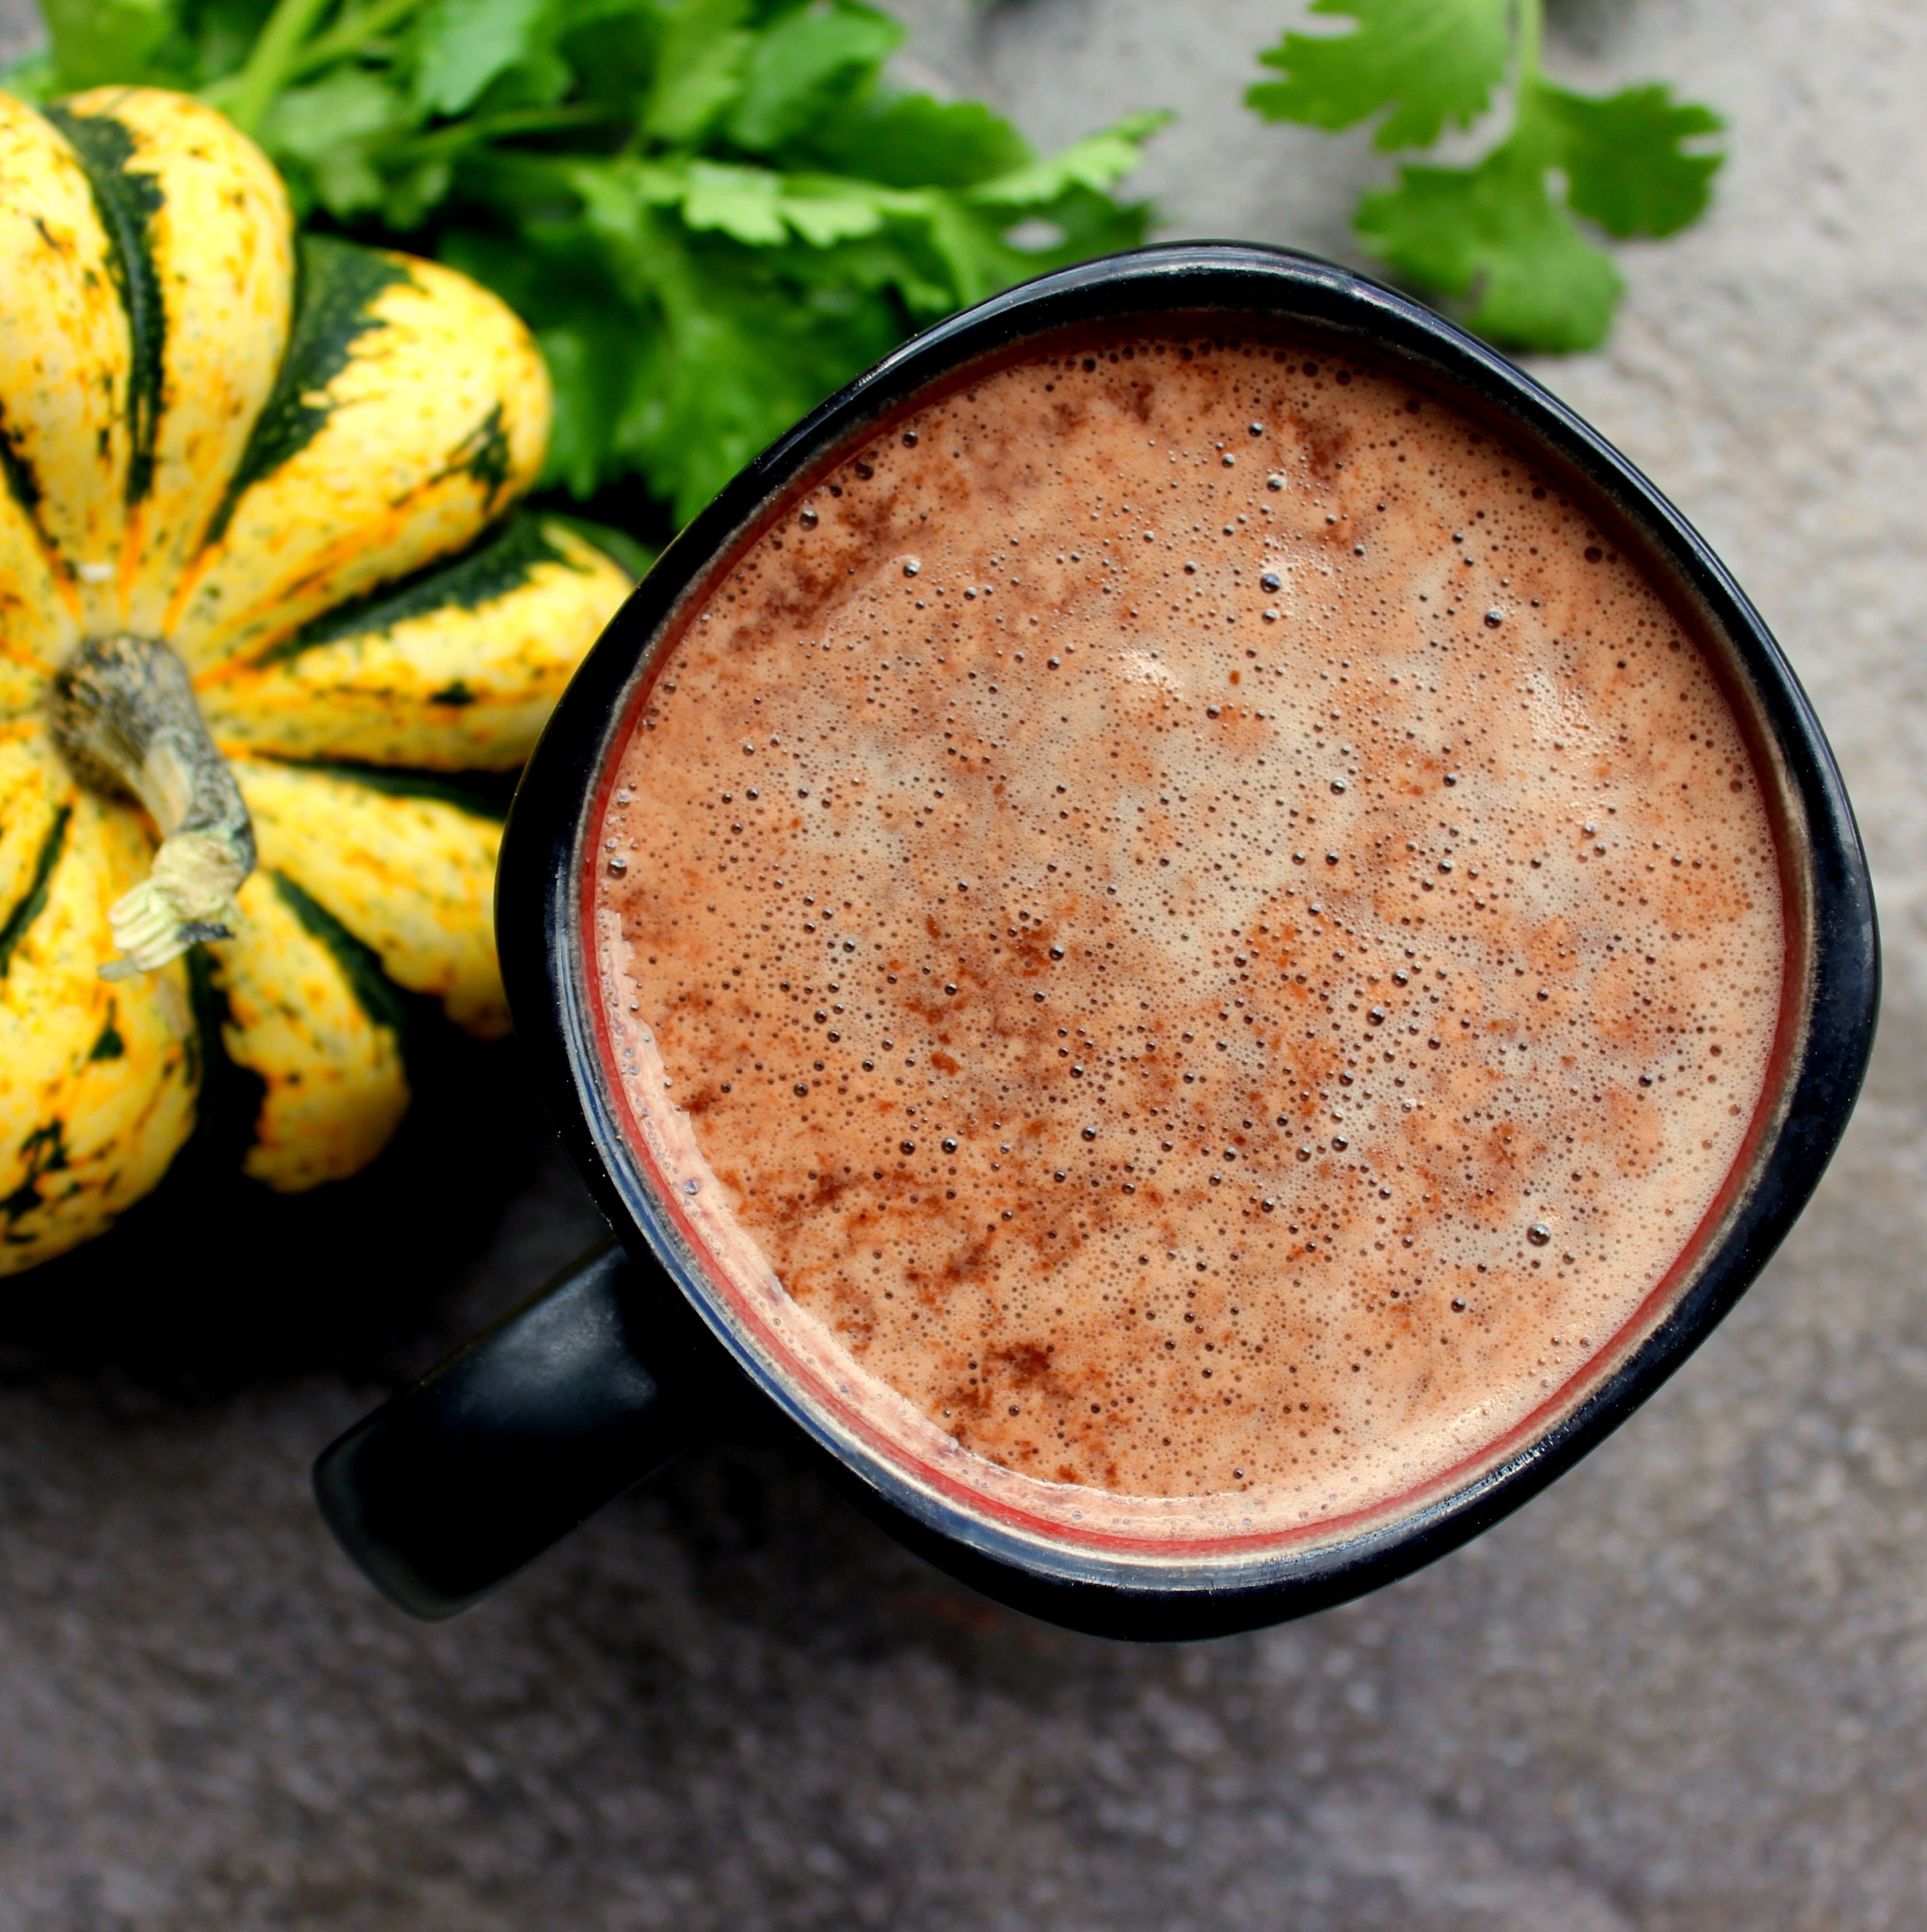 Homemade Pumpkin Spice Latte: 1 Cup Unsweetened Coconut